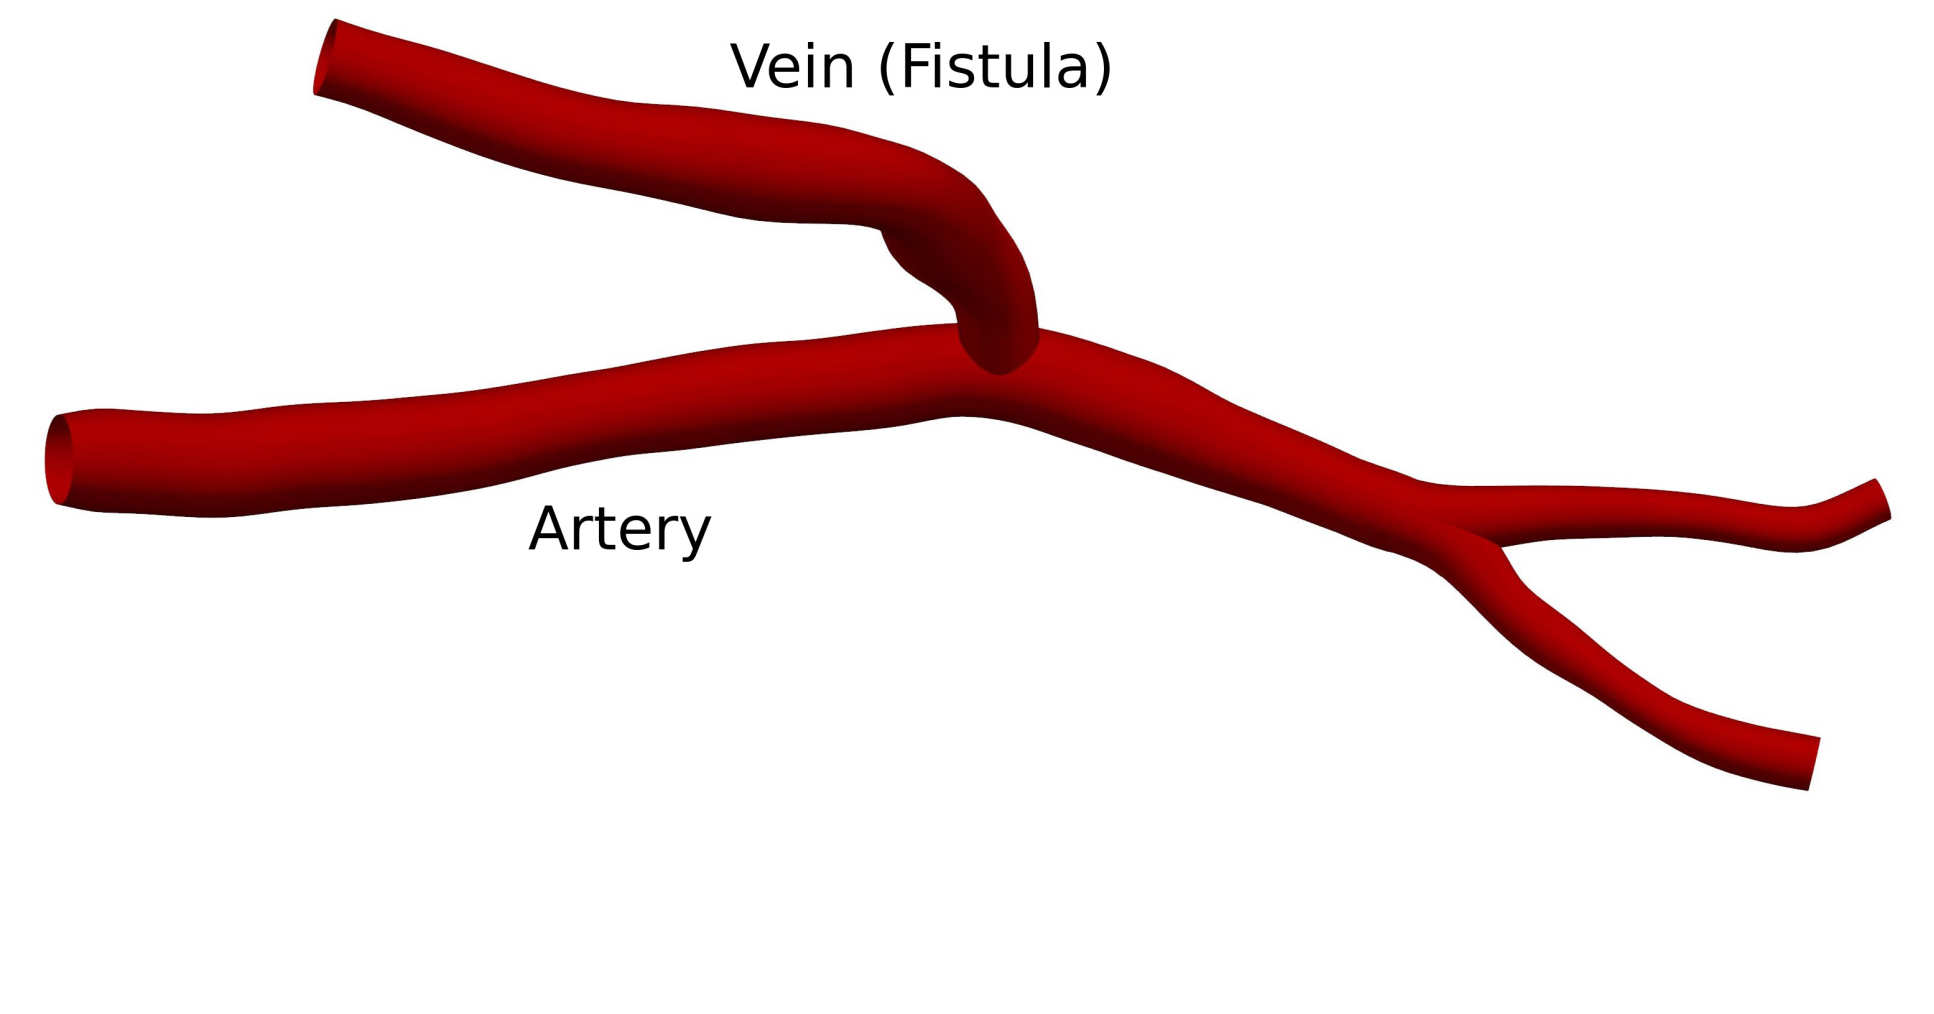 3D rendering of AVF with labels showing vein and artery